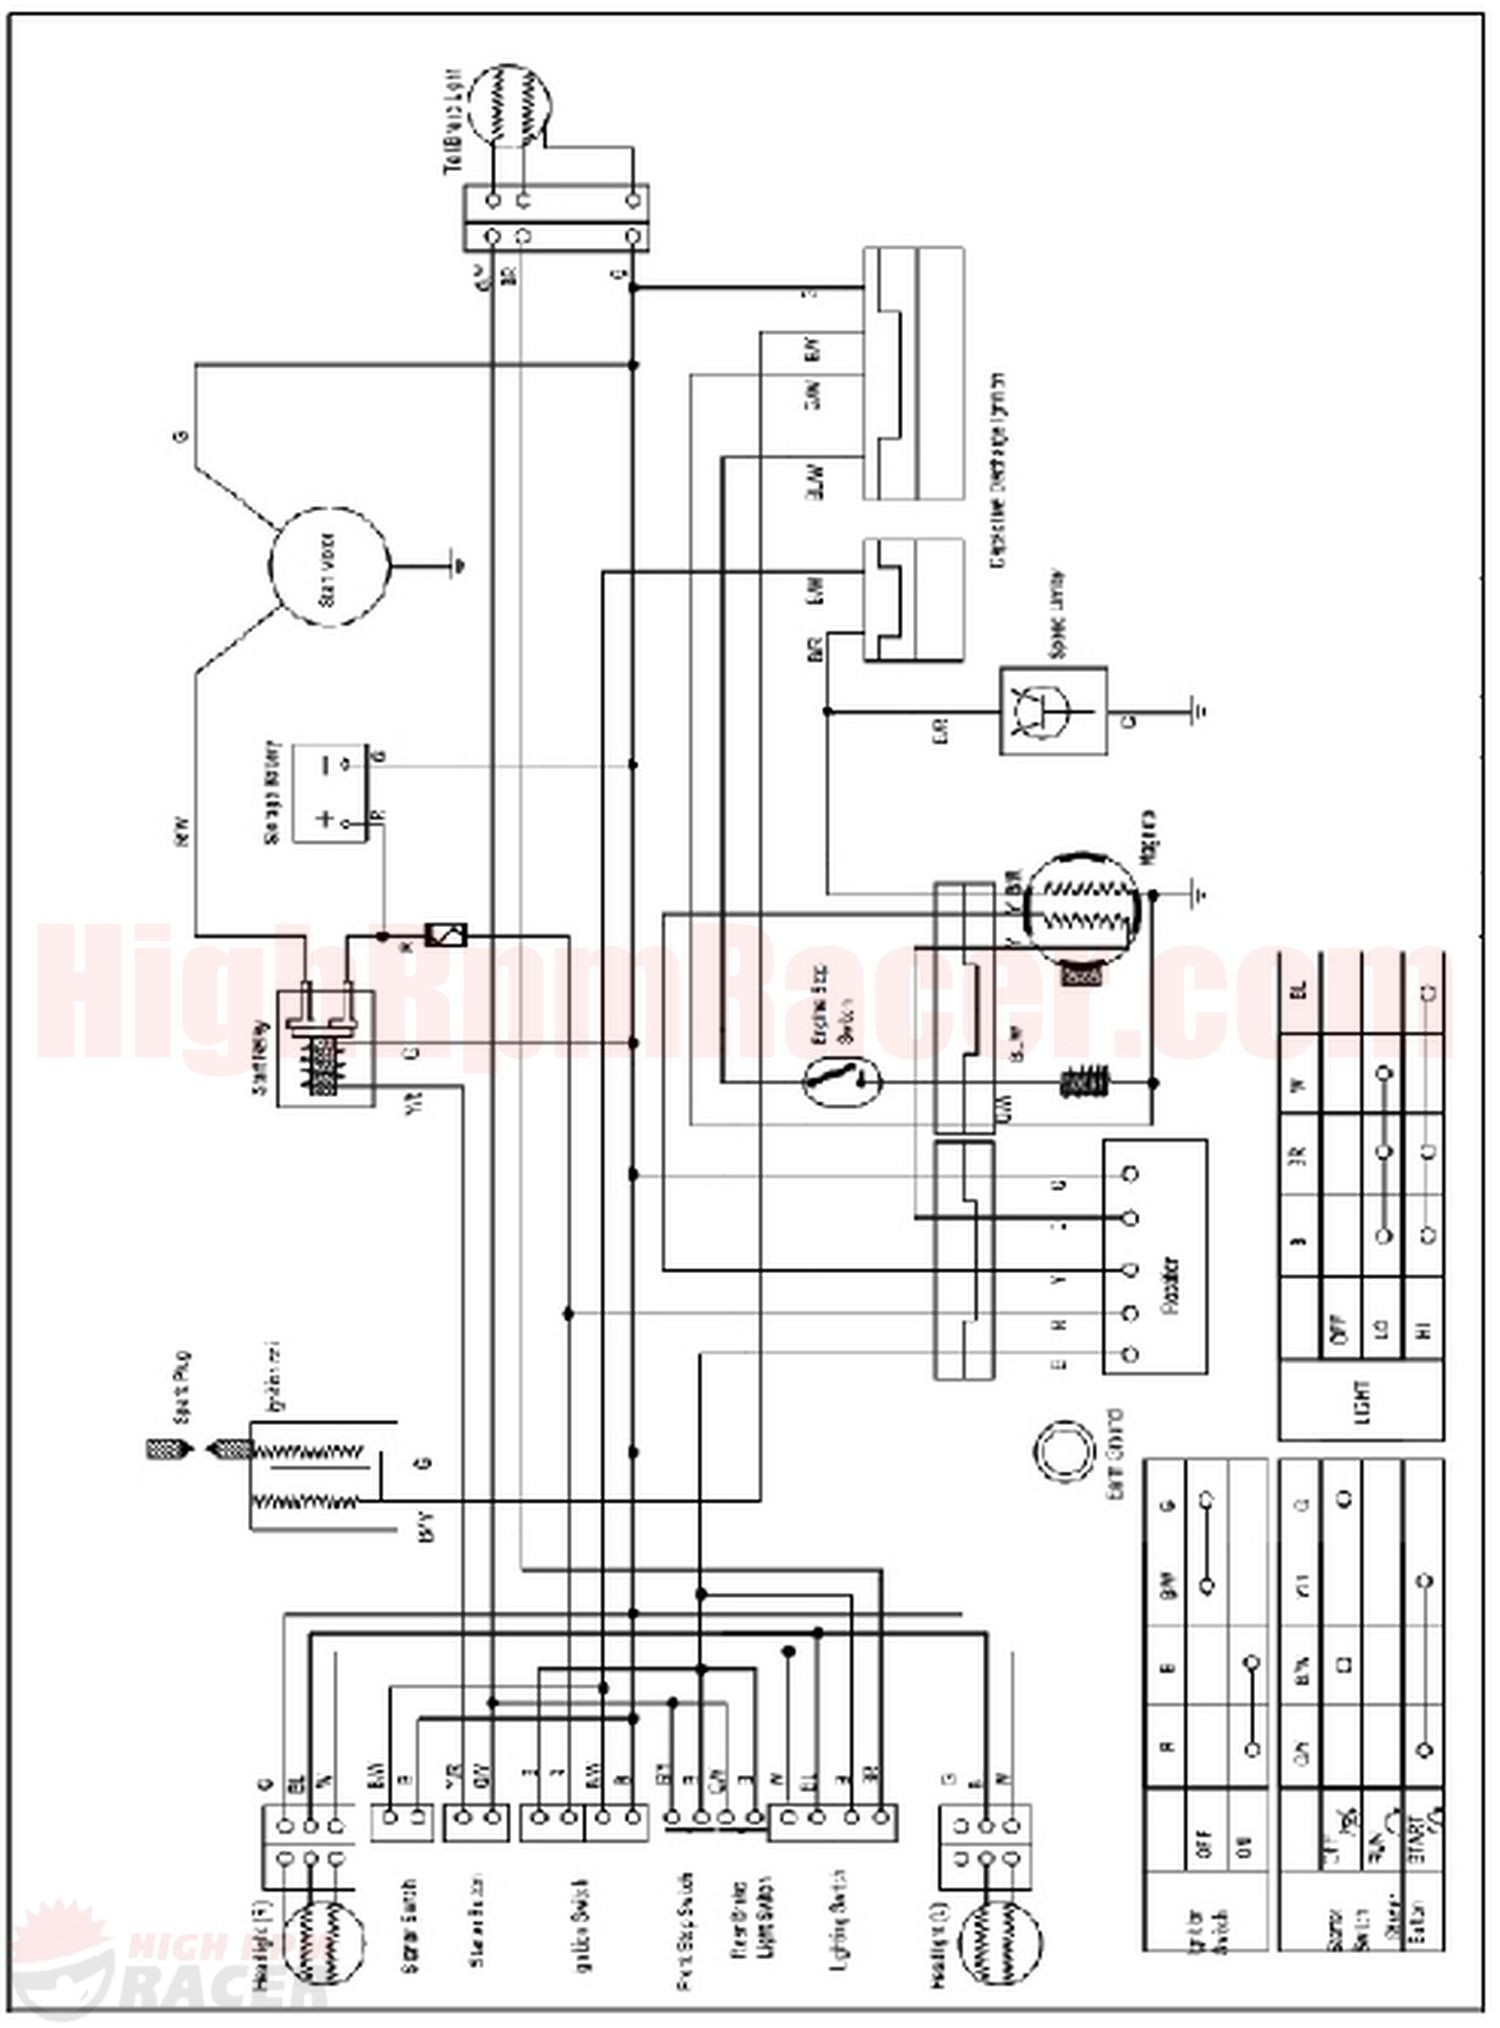 wiring diagrams atv baja 250 2005 14 6 artatec automobile de \u2022wiring diagrams atv baja 250 2005 wiring diagram rh 13 marien2018 de 2018 baja atv sales baja 250 go kart